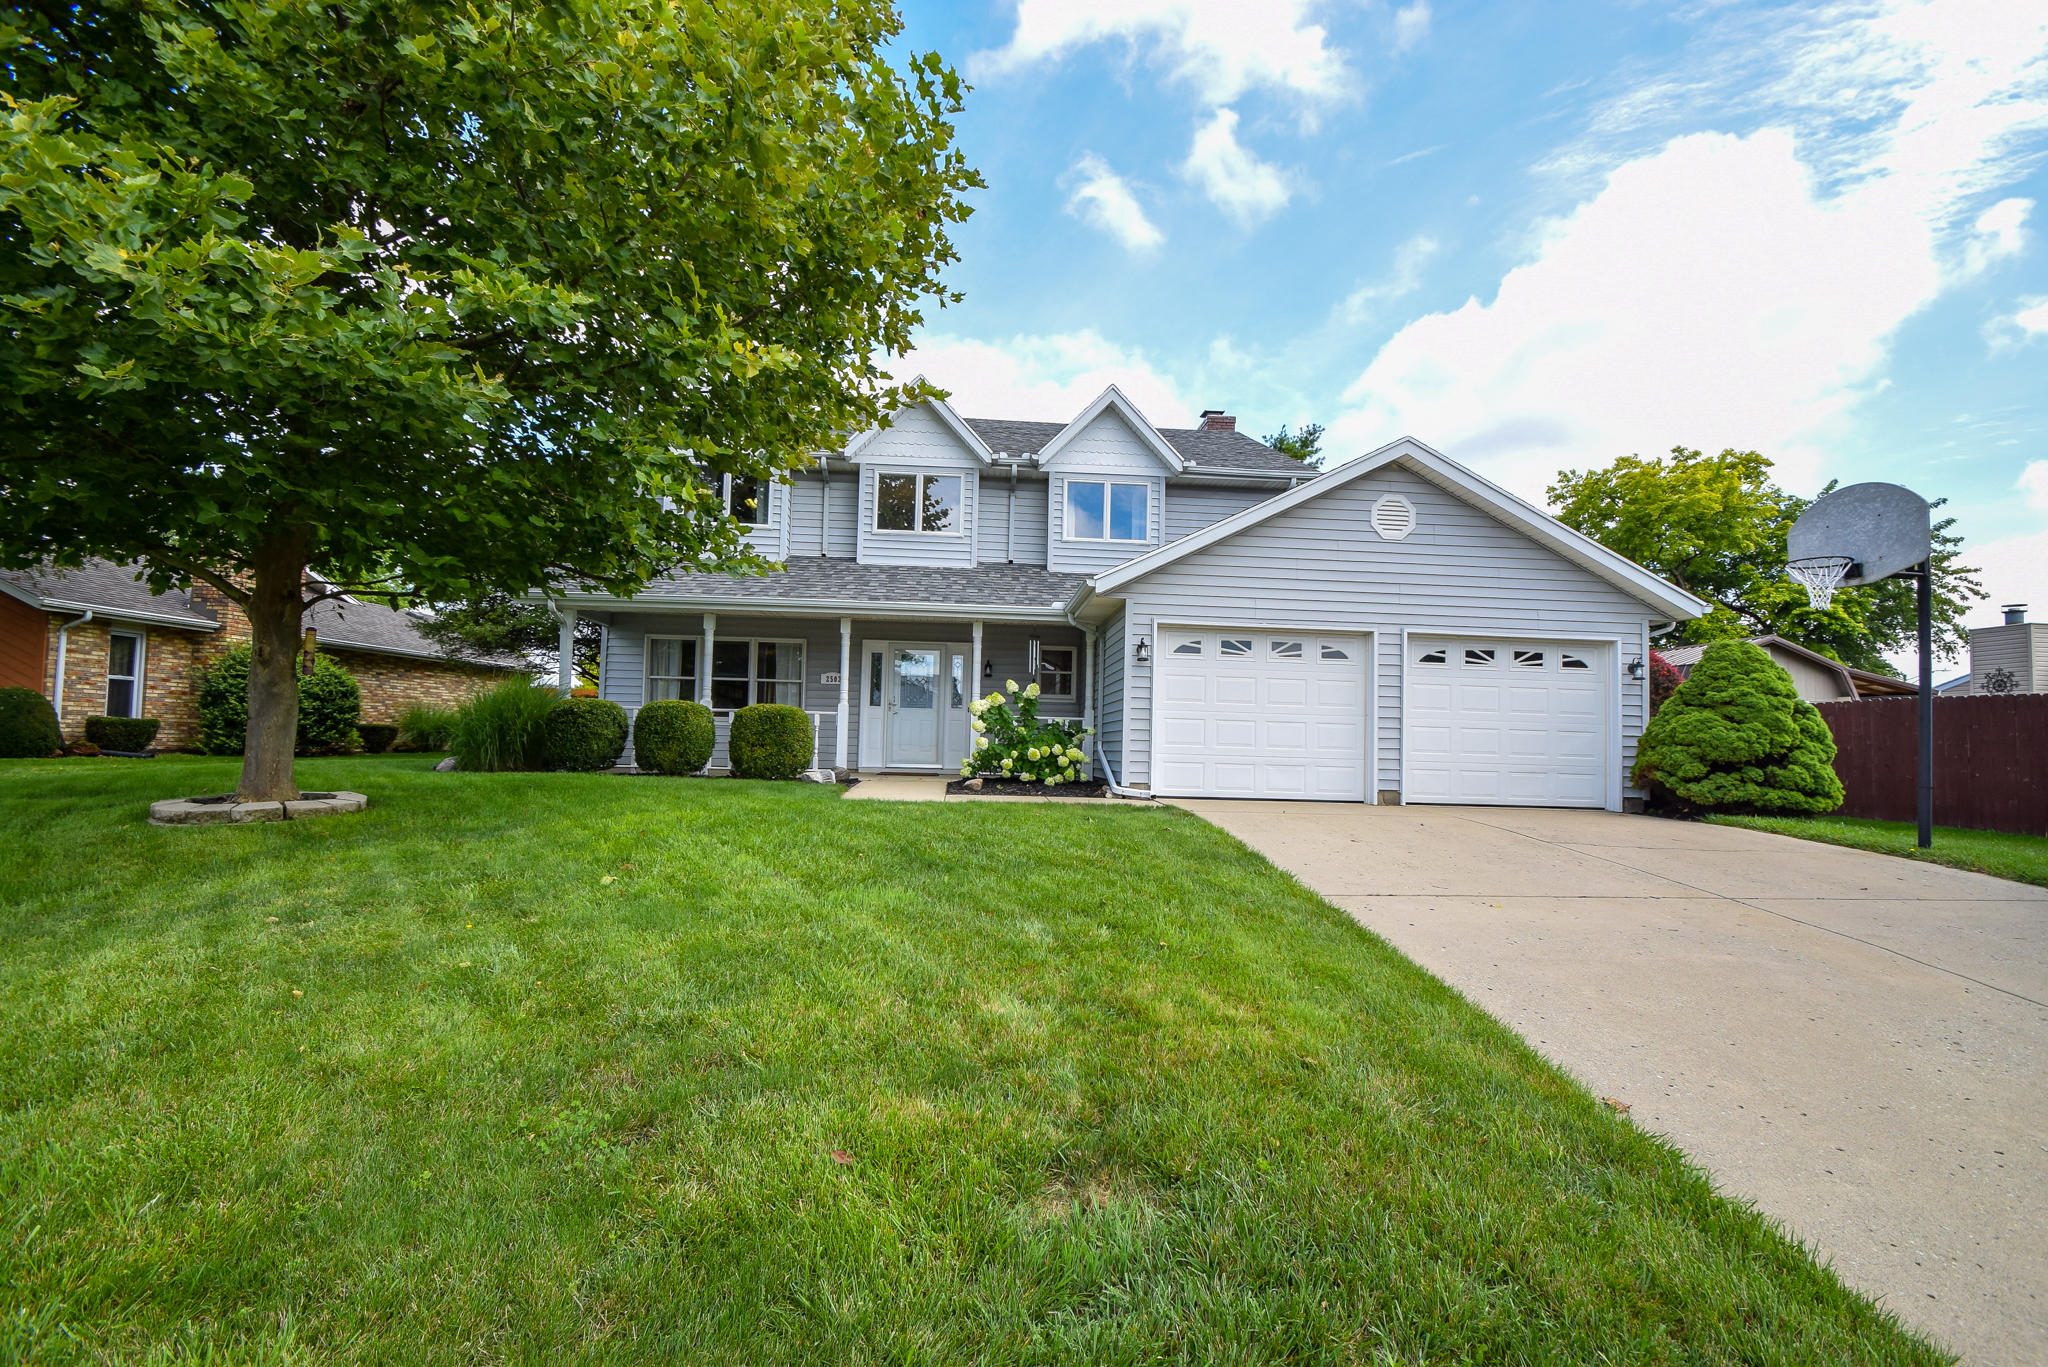 Photo 1 for 2503 St Andrews Dr Troy, OH 45373